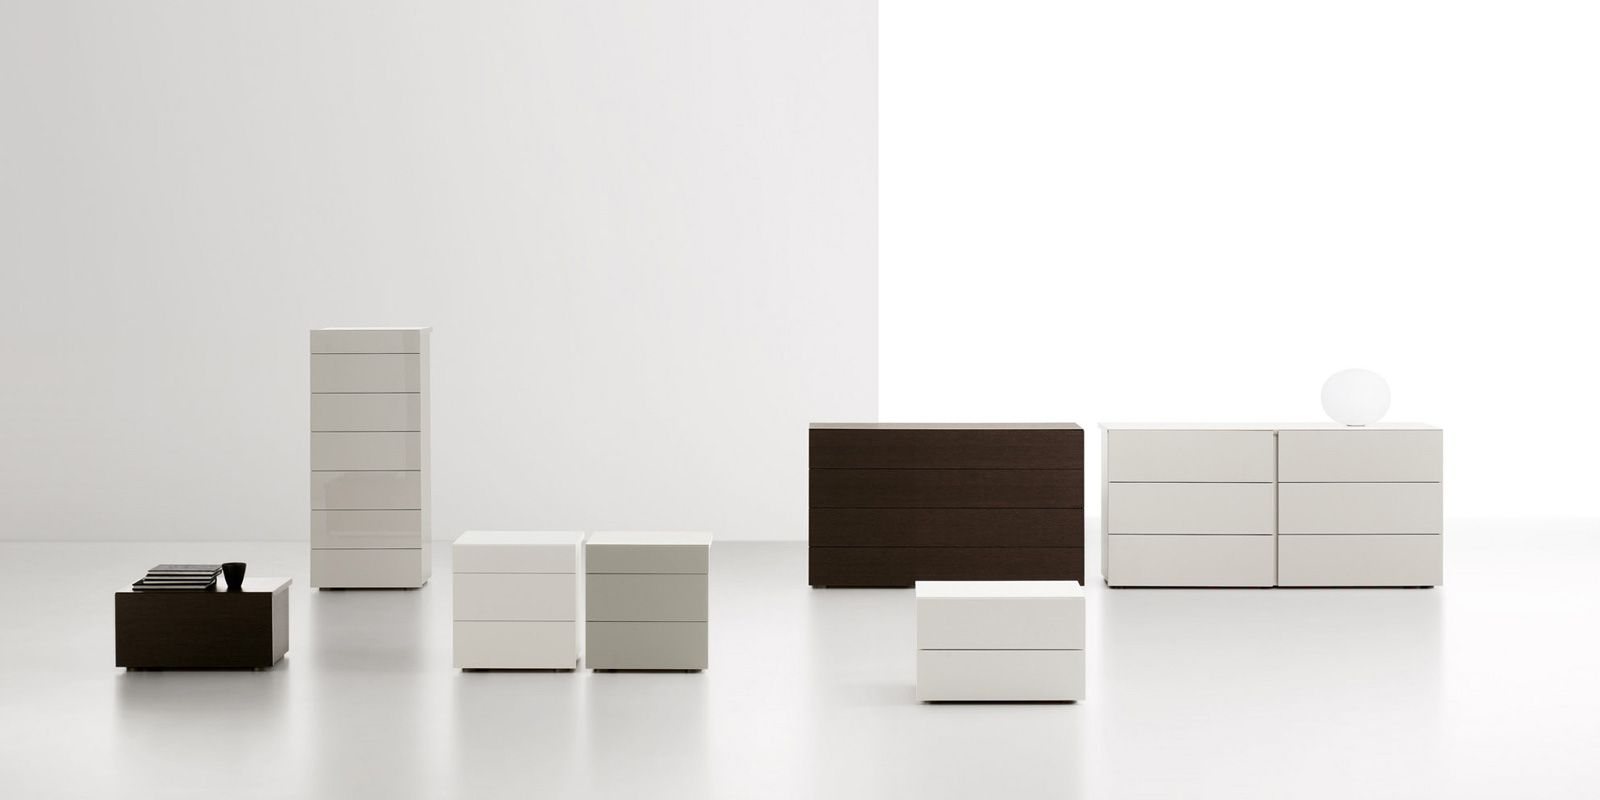 cap dressers and night stands by sangiacomo   spaces of interest ... - Composizioni Soggiorno San Giacomo 2